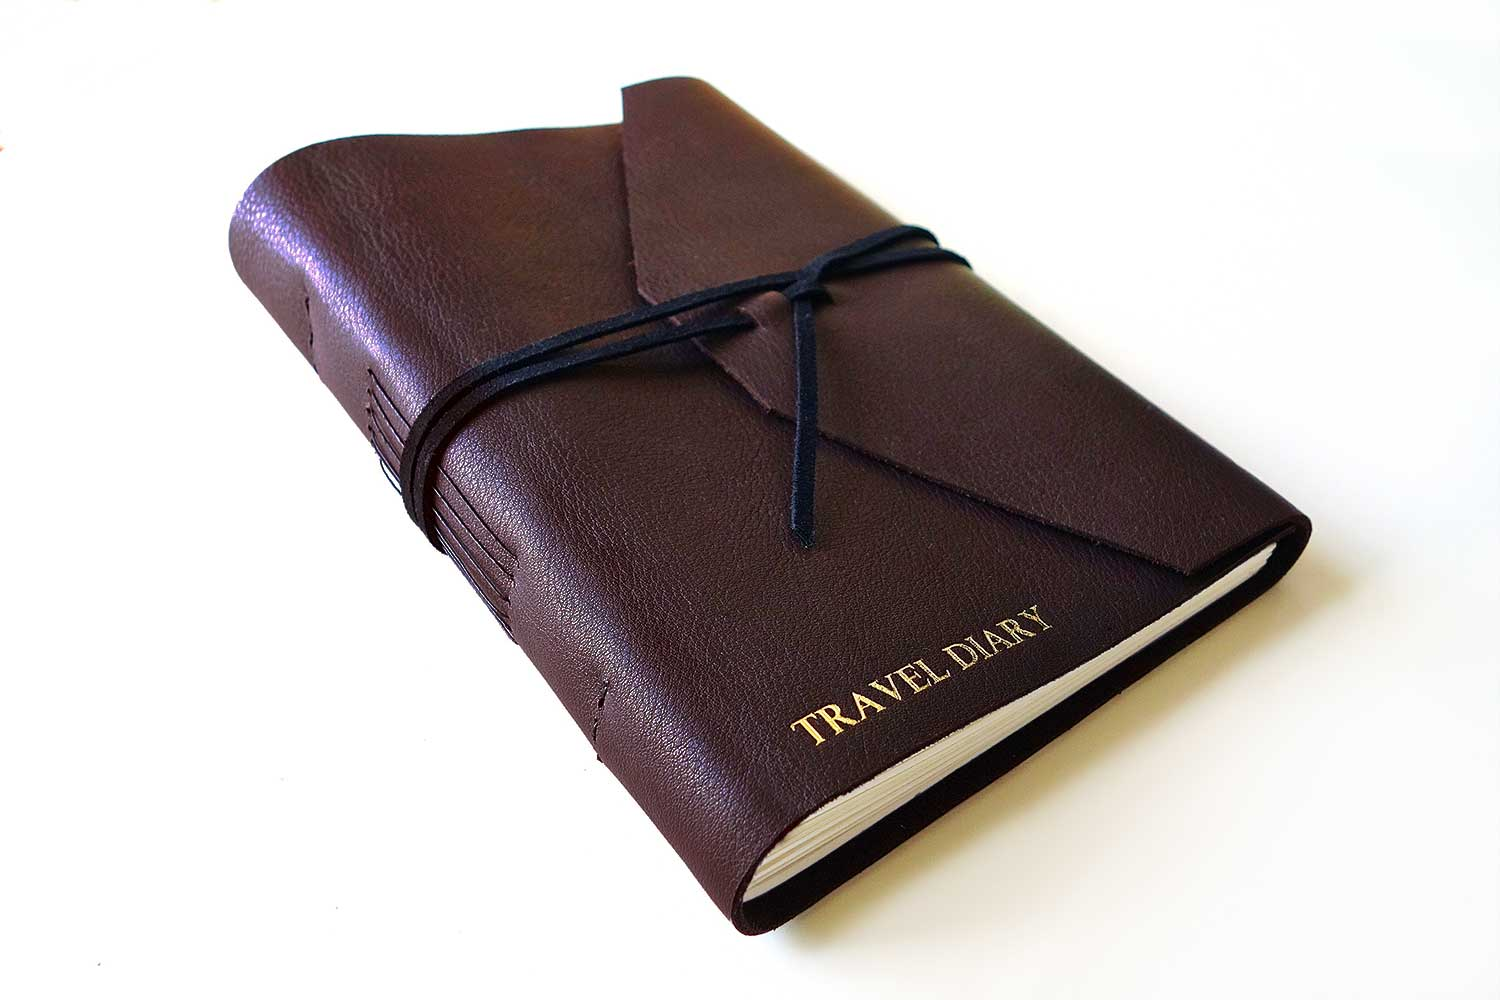 Men's journal from Bookshell bindery with Travel Diary on the cover